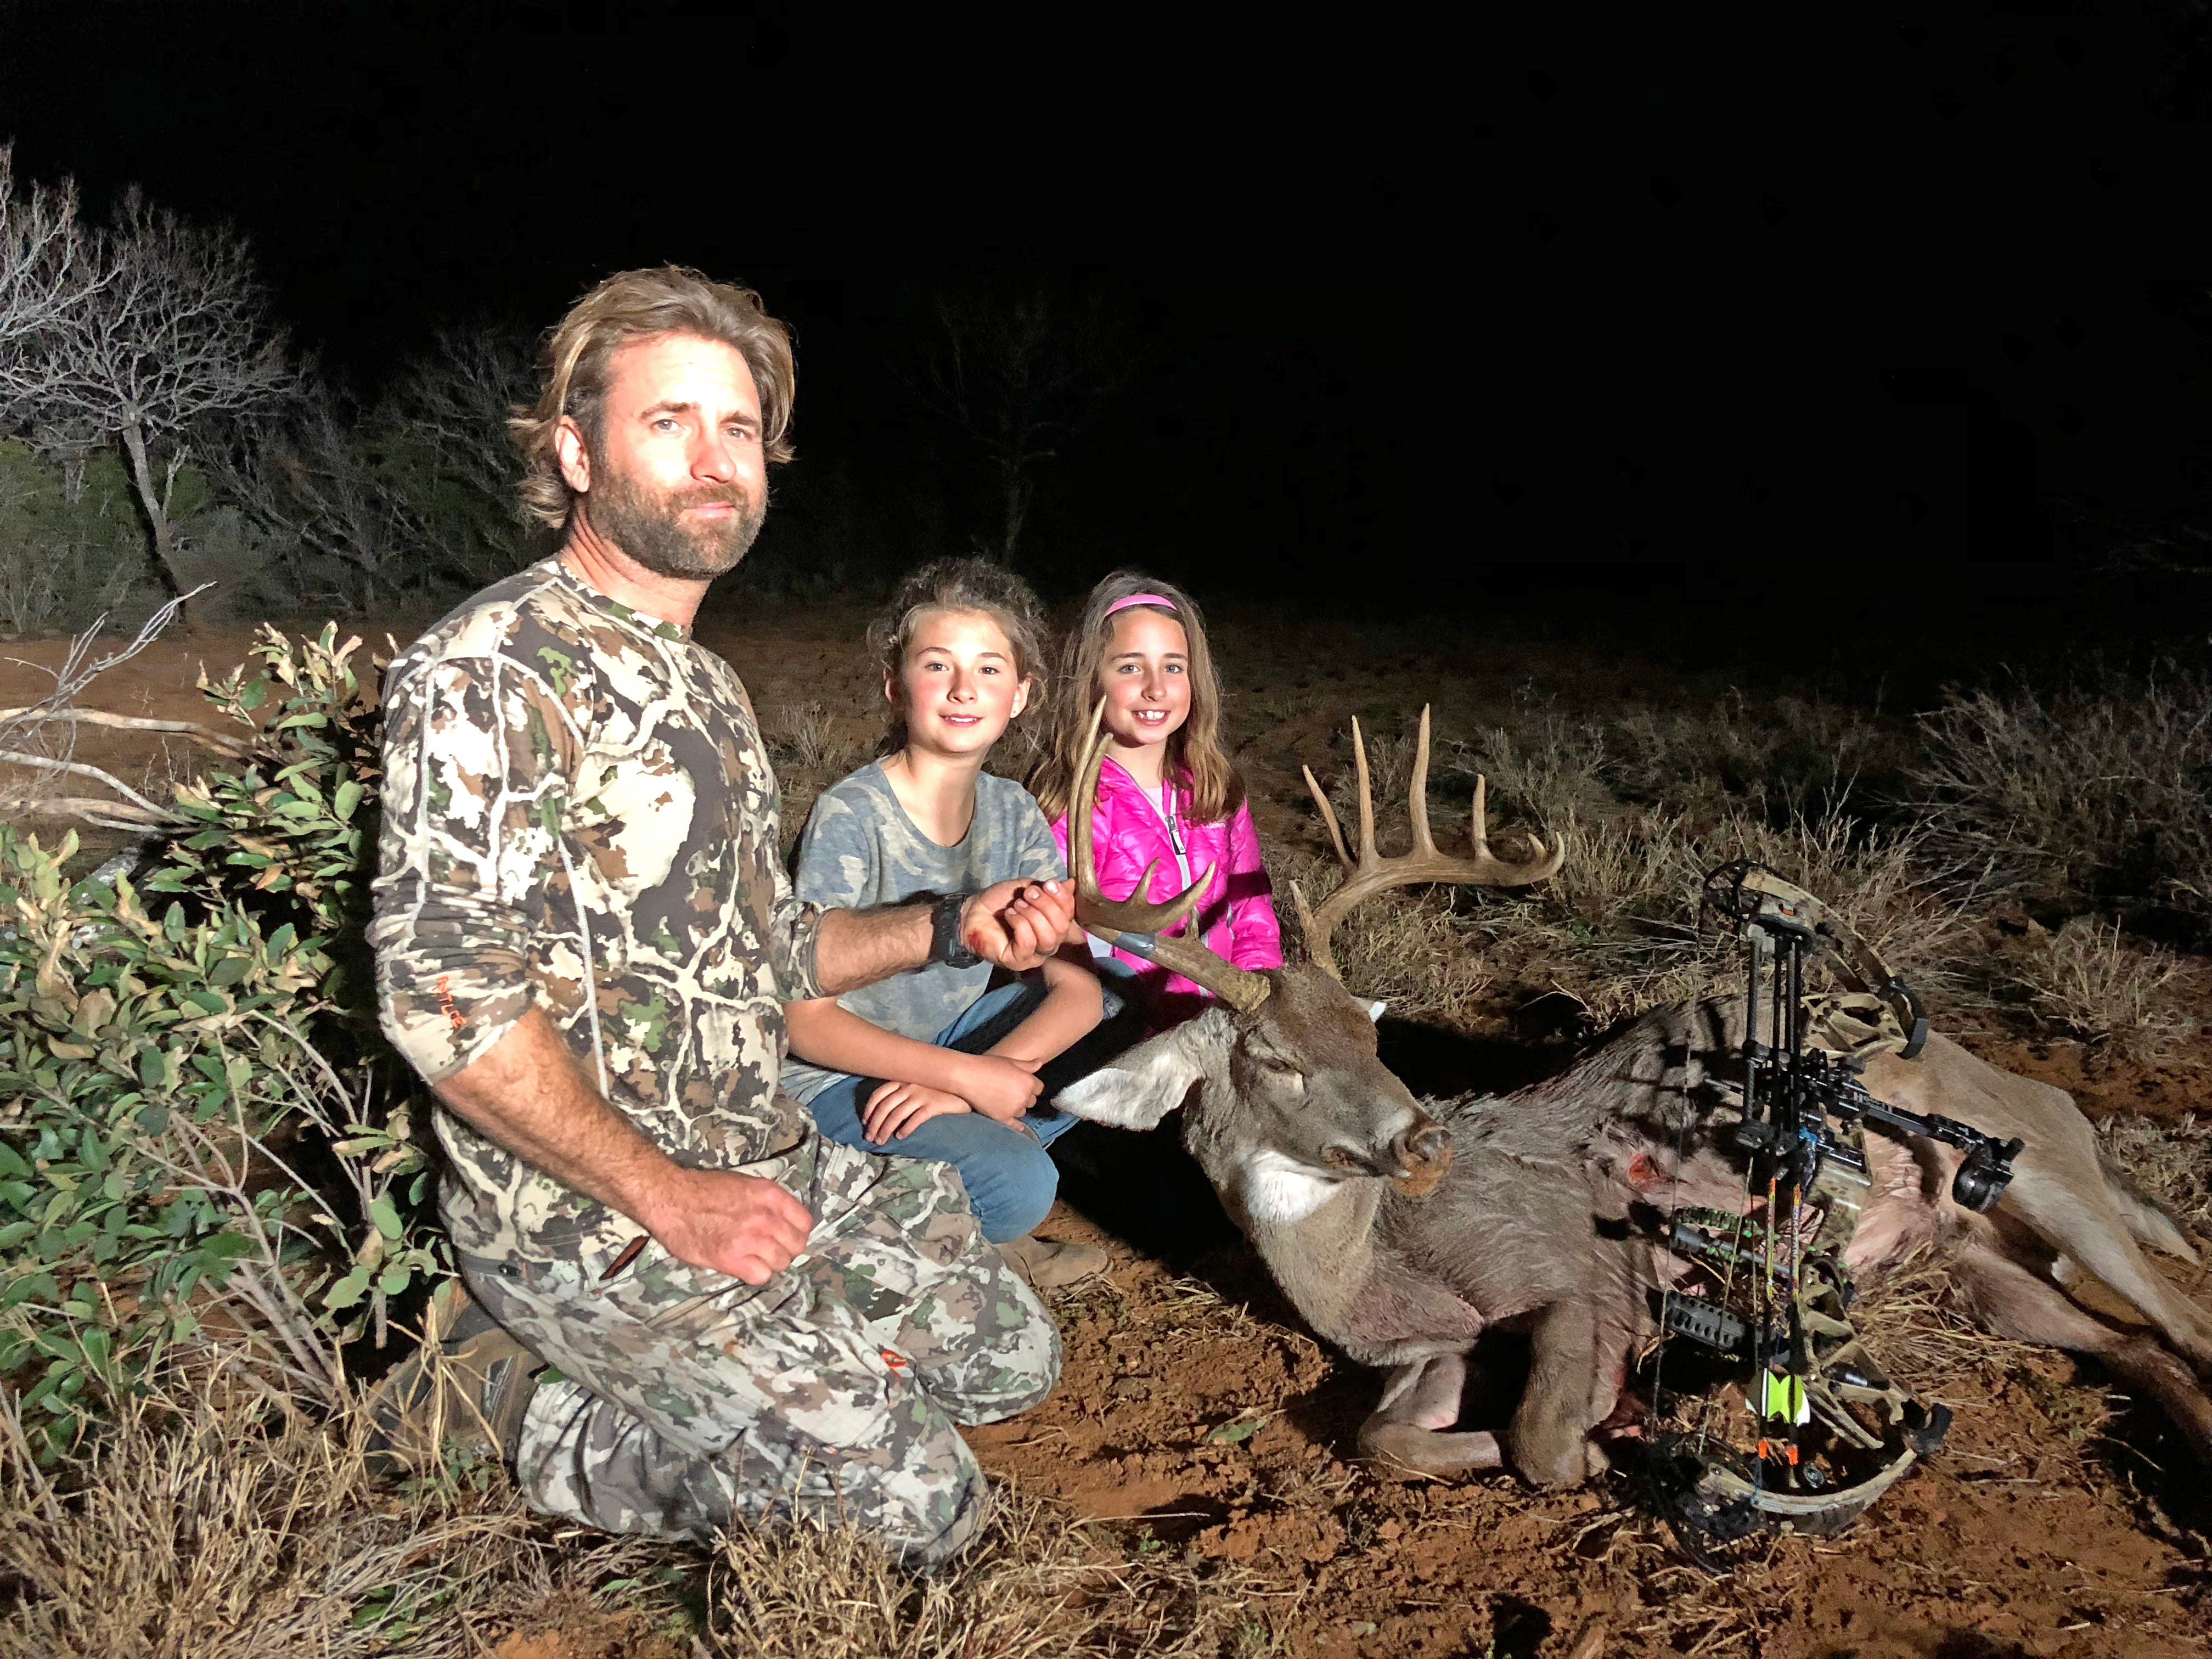 Bowhunter Chisum Cooke shot this 12-point buck while hunting near Encinal. That's daughters Rylee, 9, and Charlotte, 7, by his side.